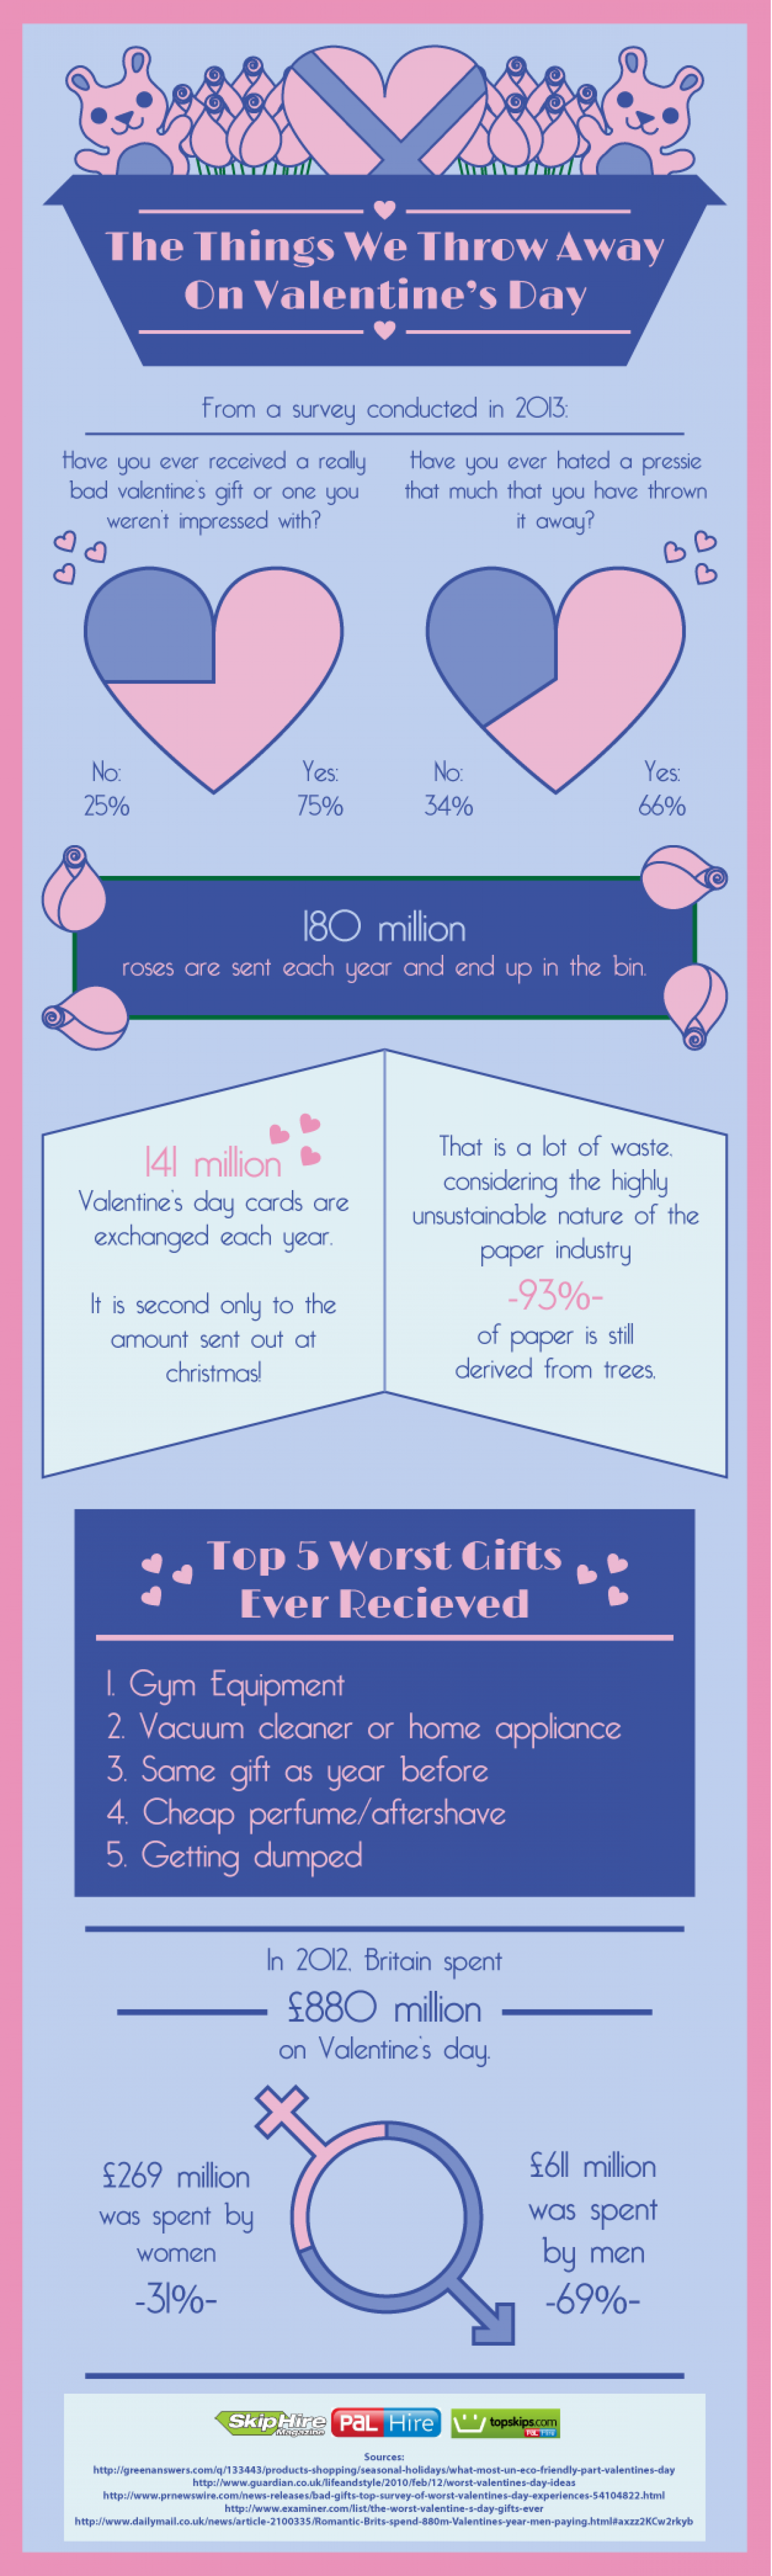 The Things We Throw Away On Valentine's Day Infographic